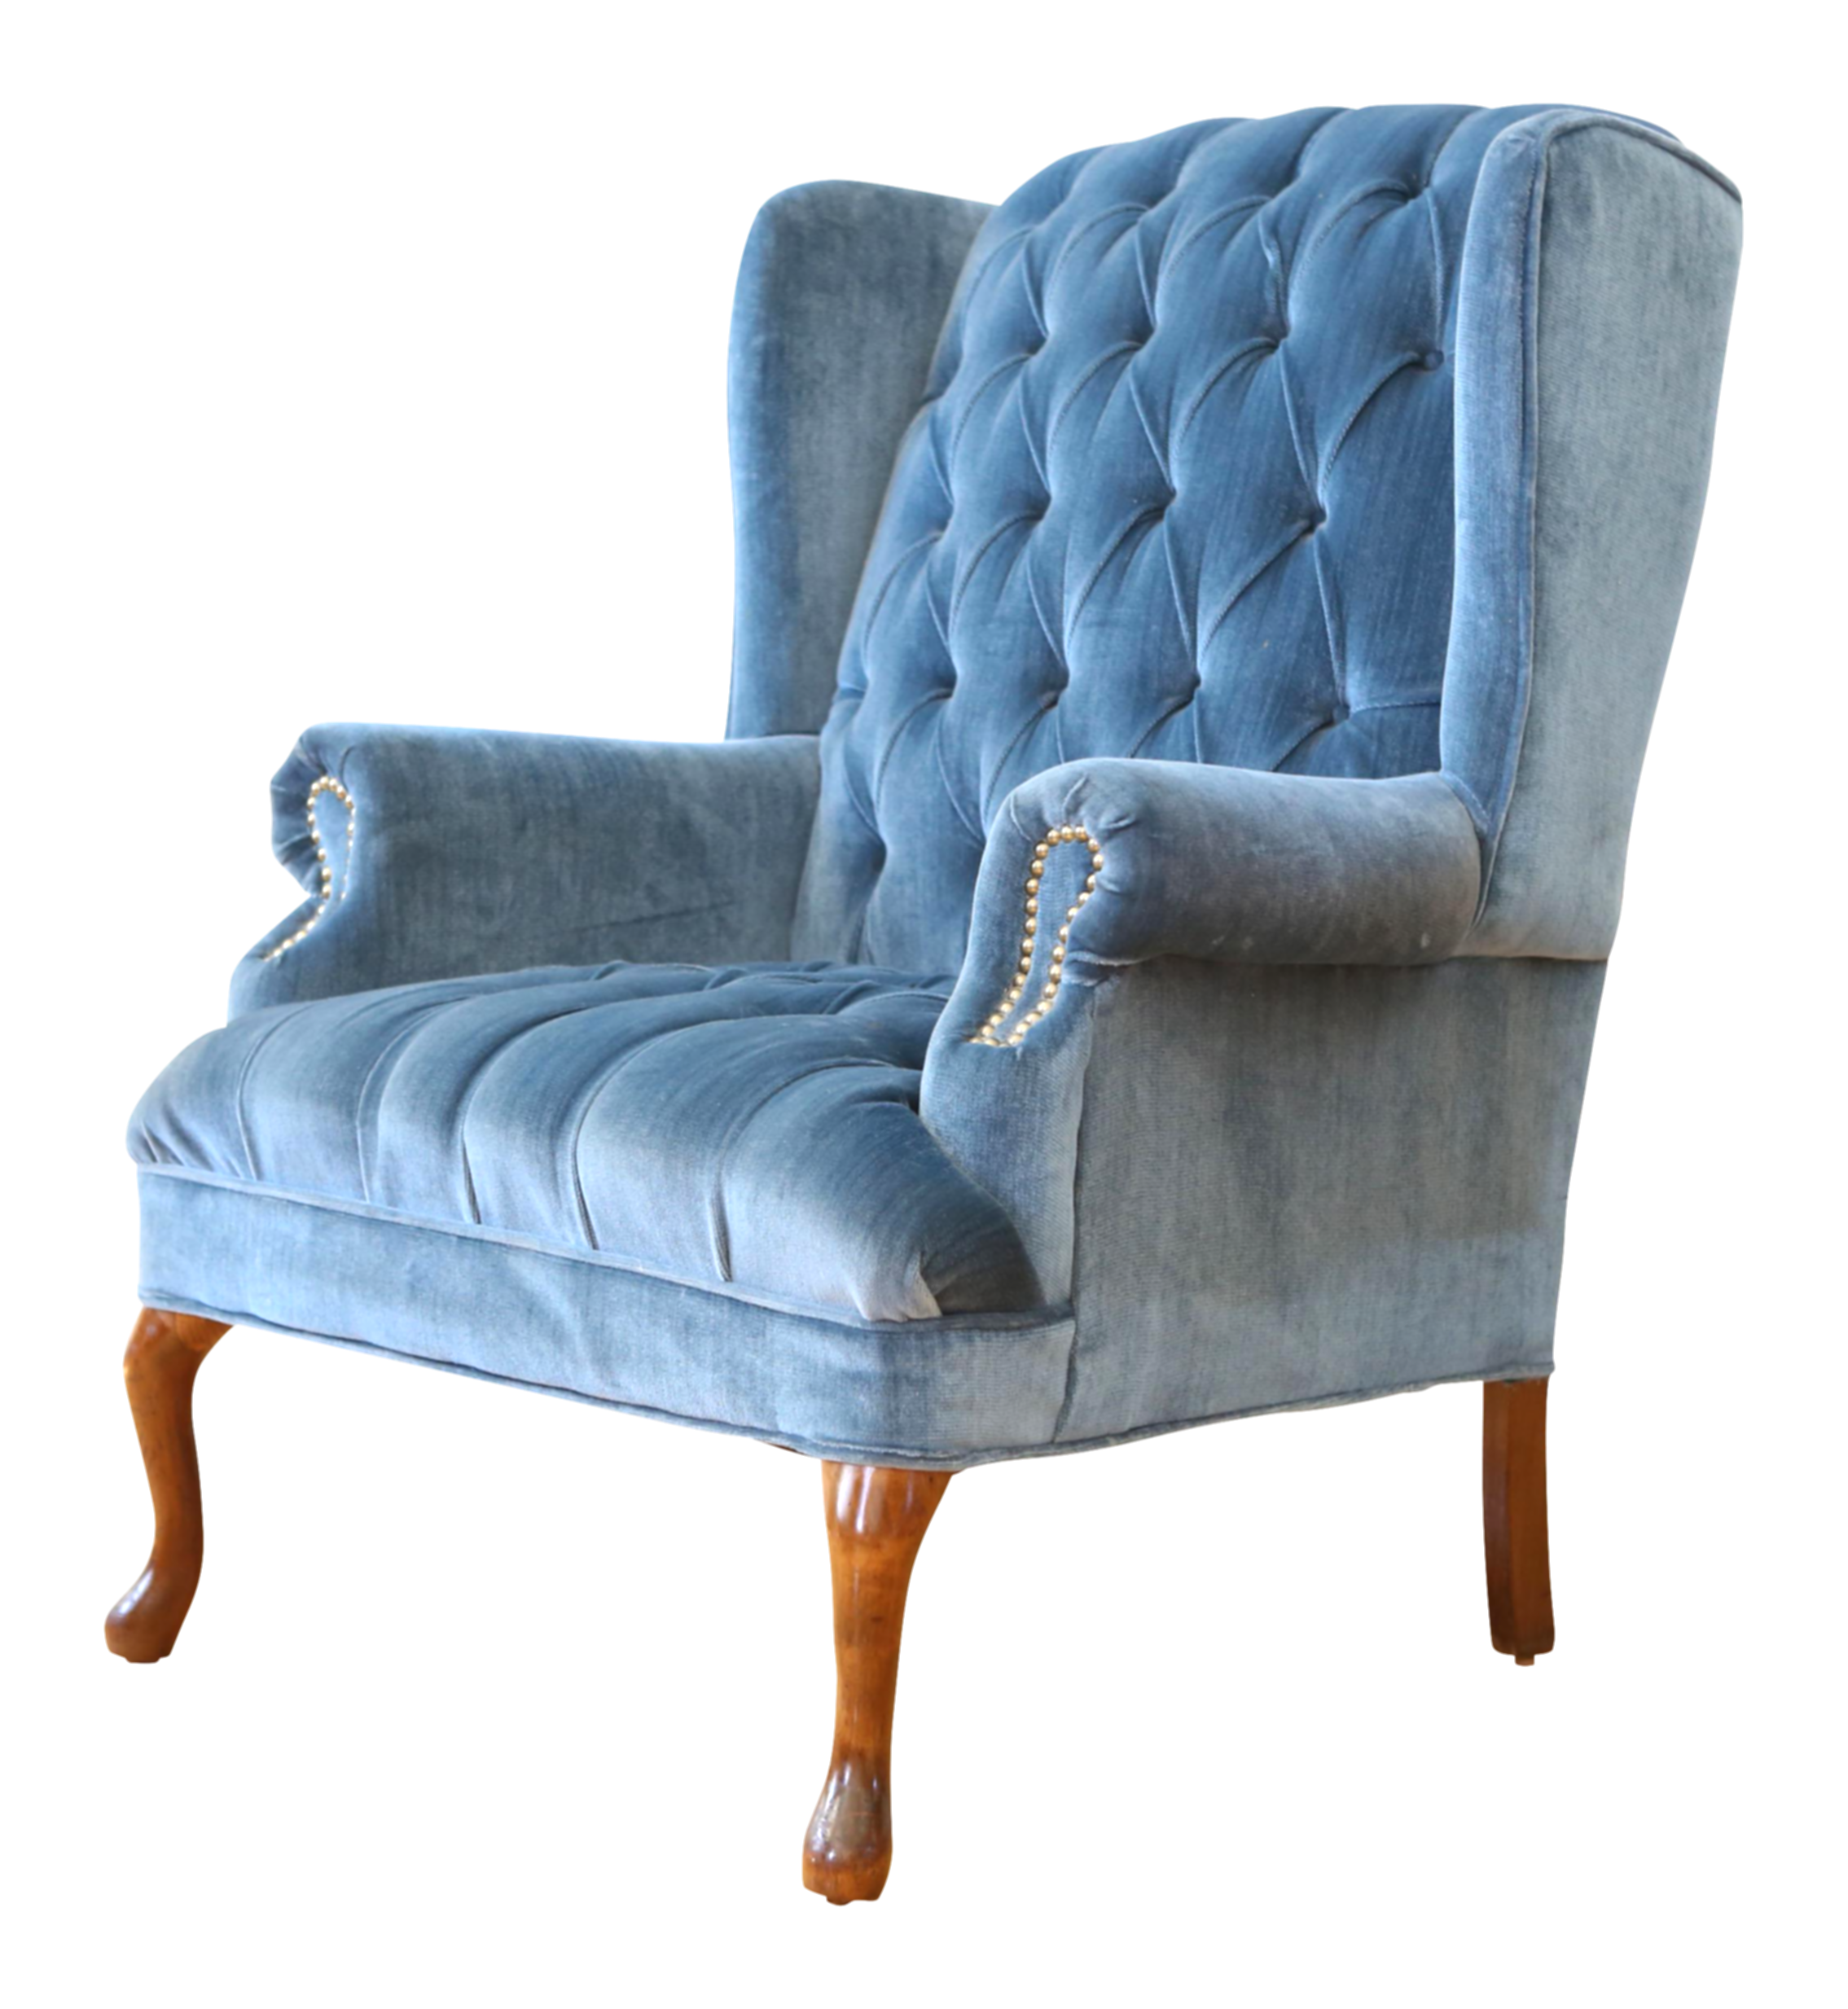 armchair drawing wingback chair